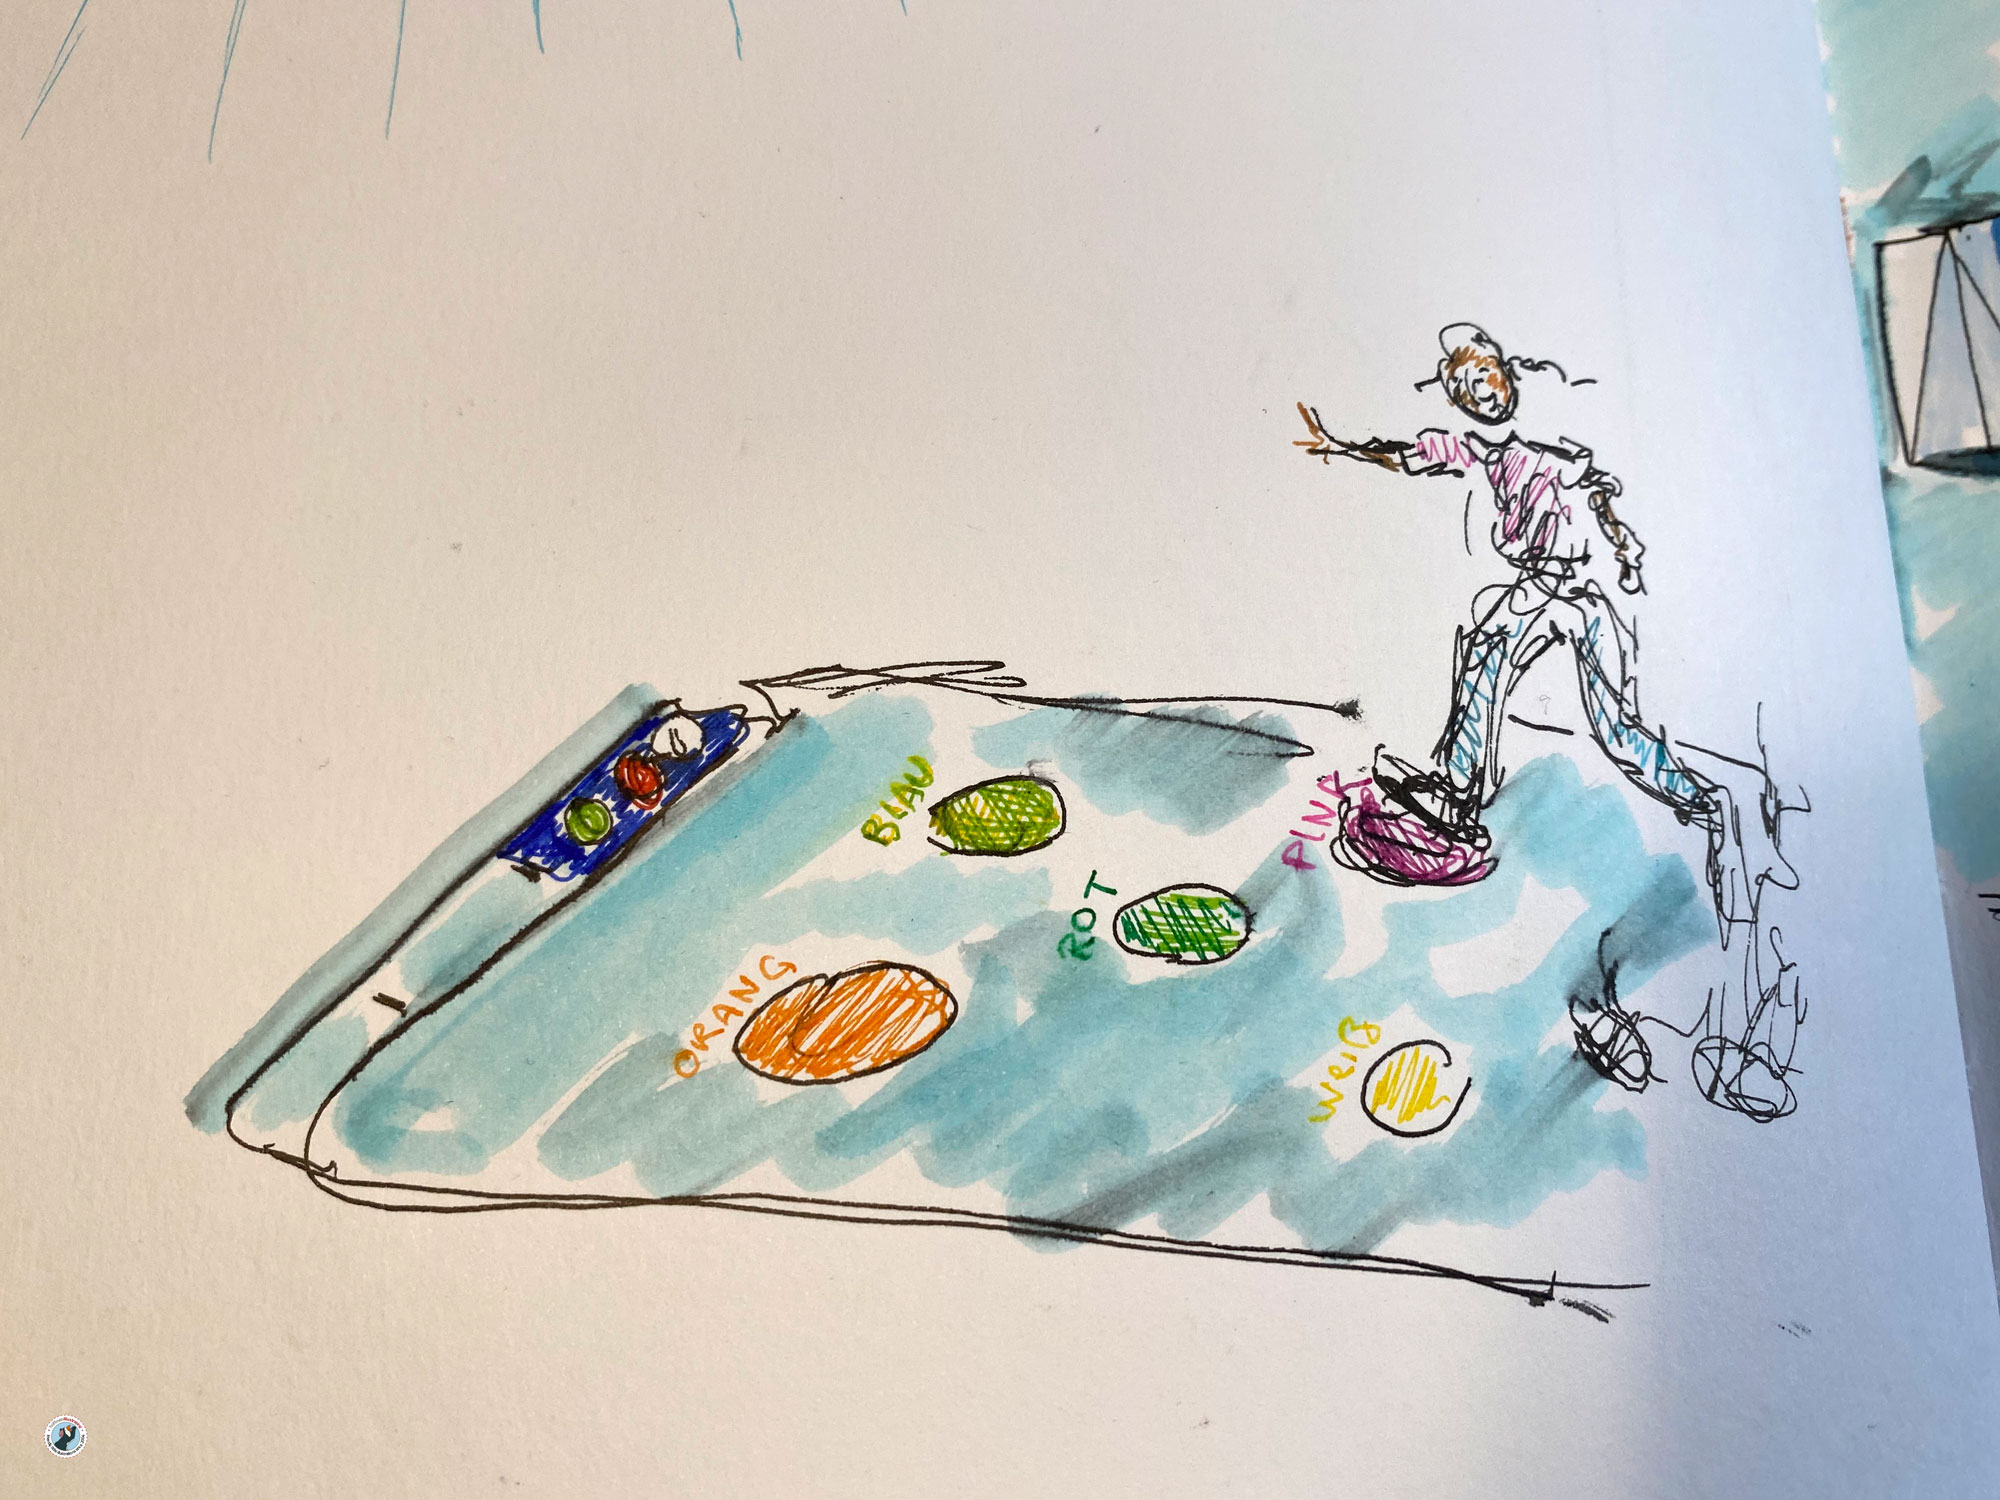 This is a preliminary sketch for an activity in the experimenta in Heilbronn. A girl is jumping on color dots on an oversize activity screen.